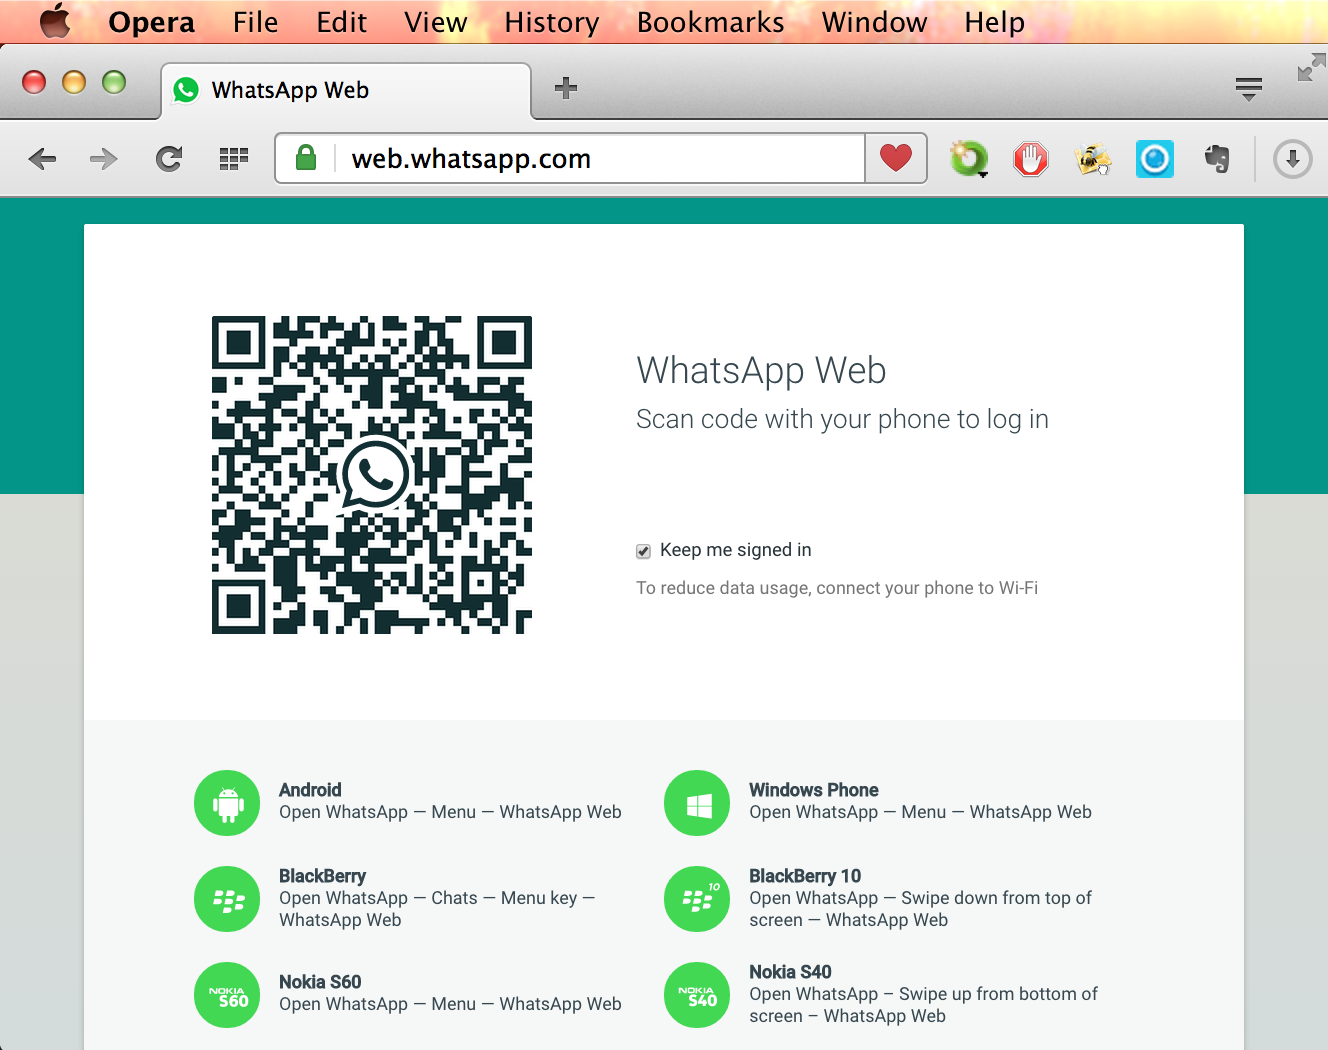 whatsapp web scan code